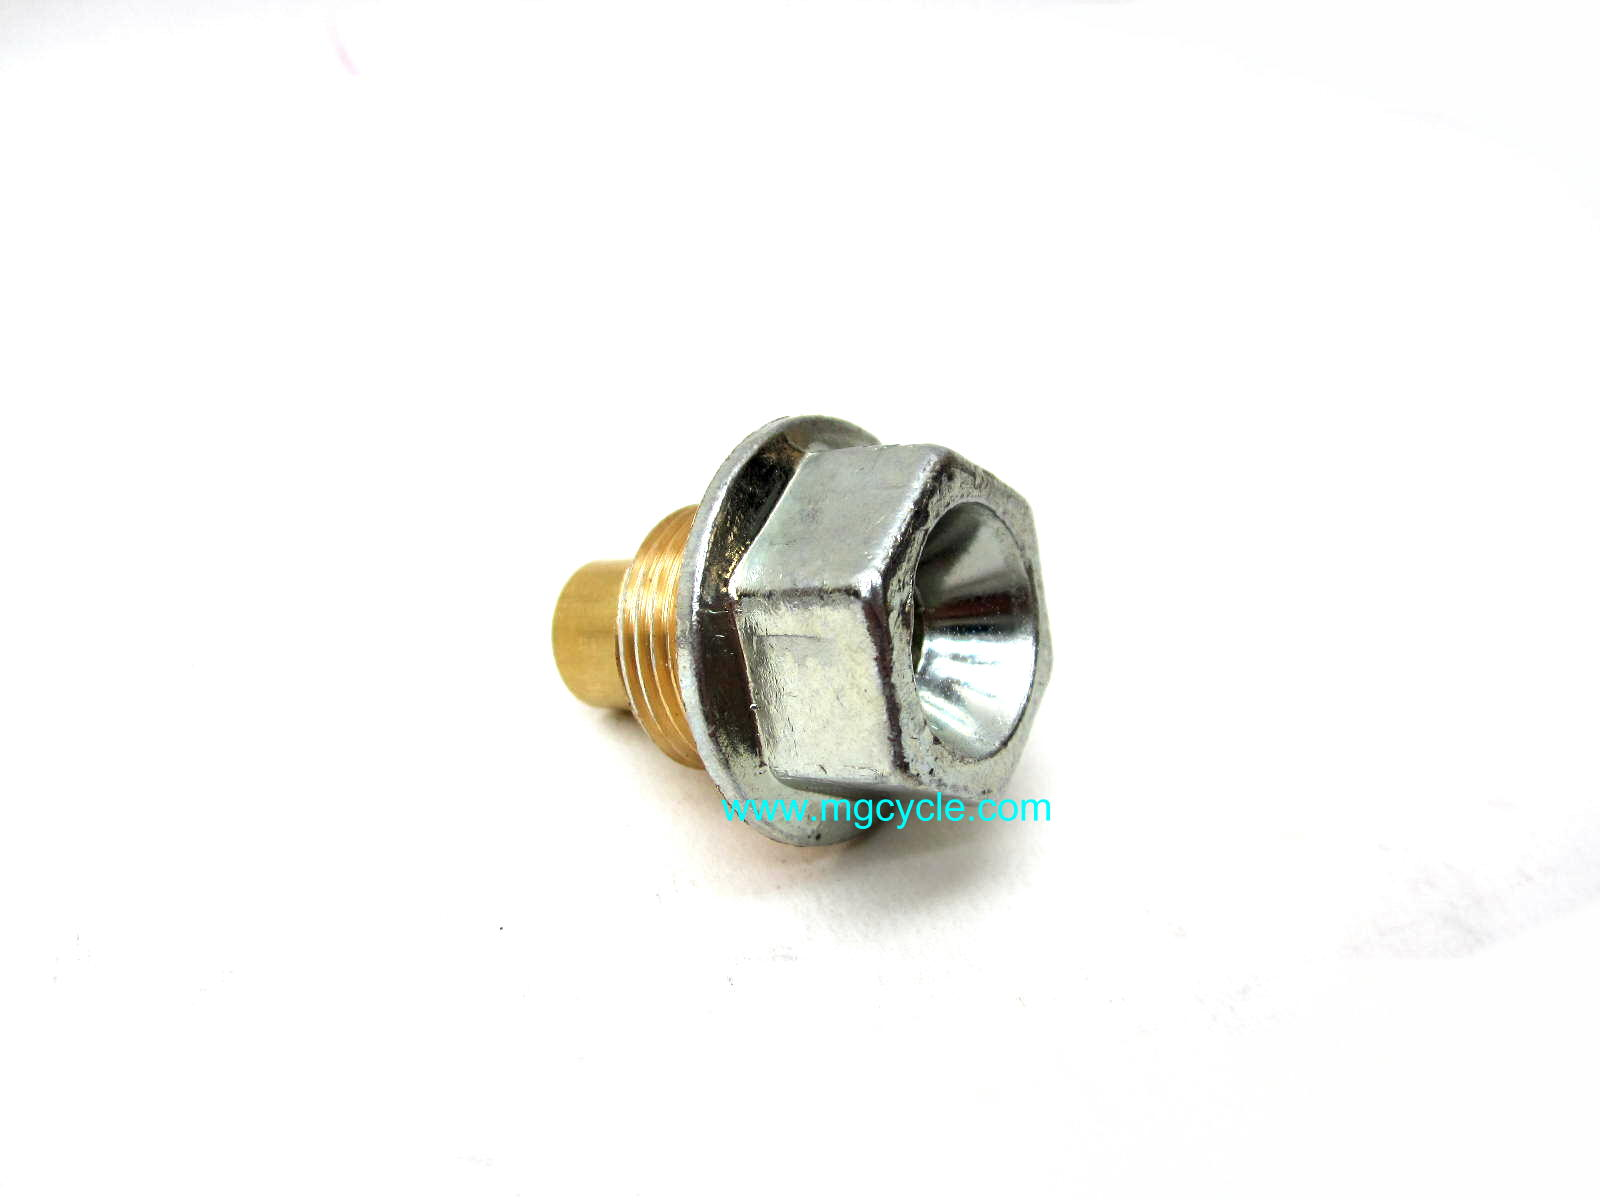 oil drain plug with built in magnet